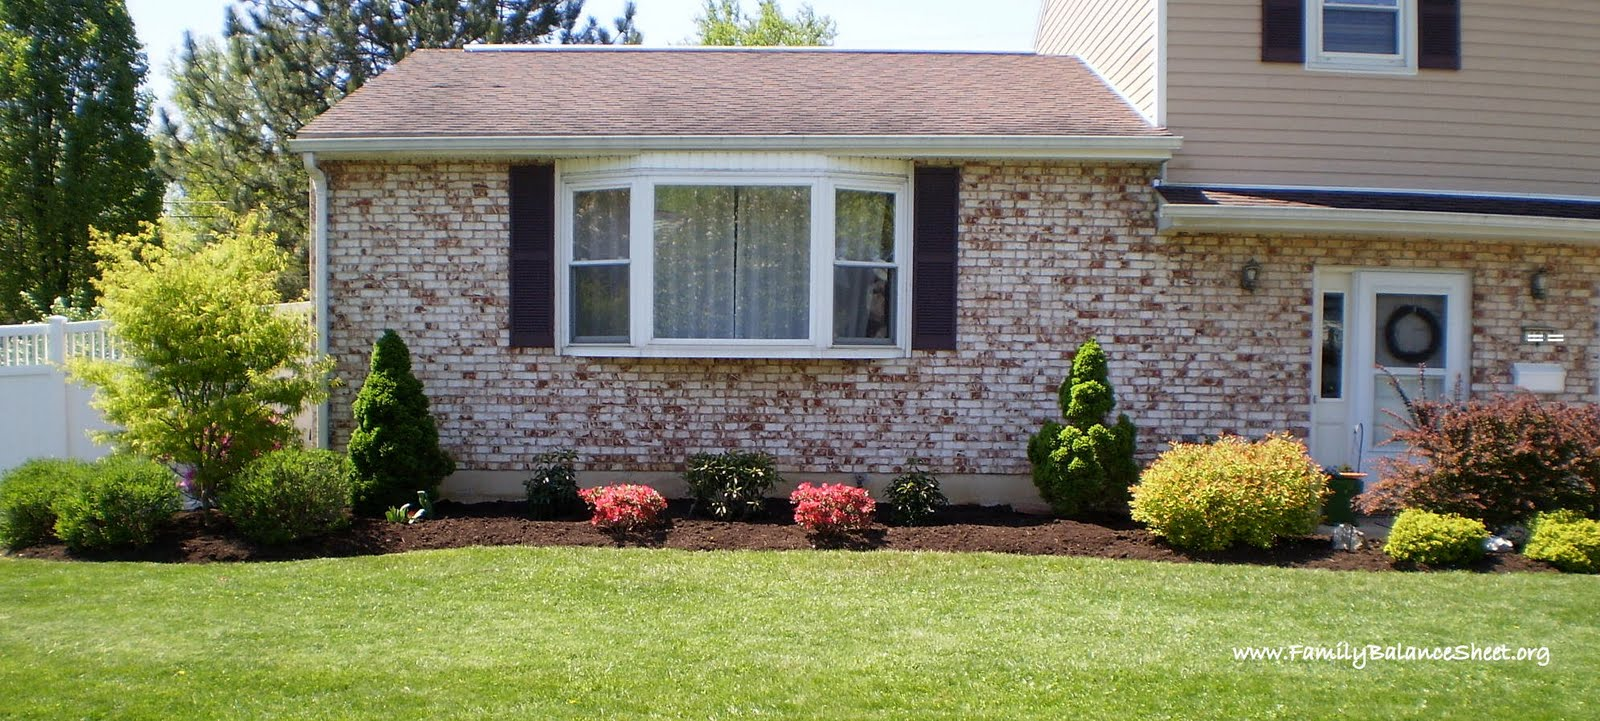 15 tips to help you design your front yard save money too for Garden in front of house